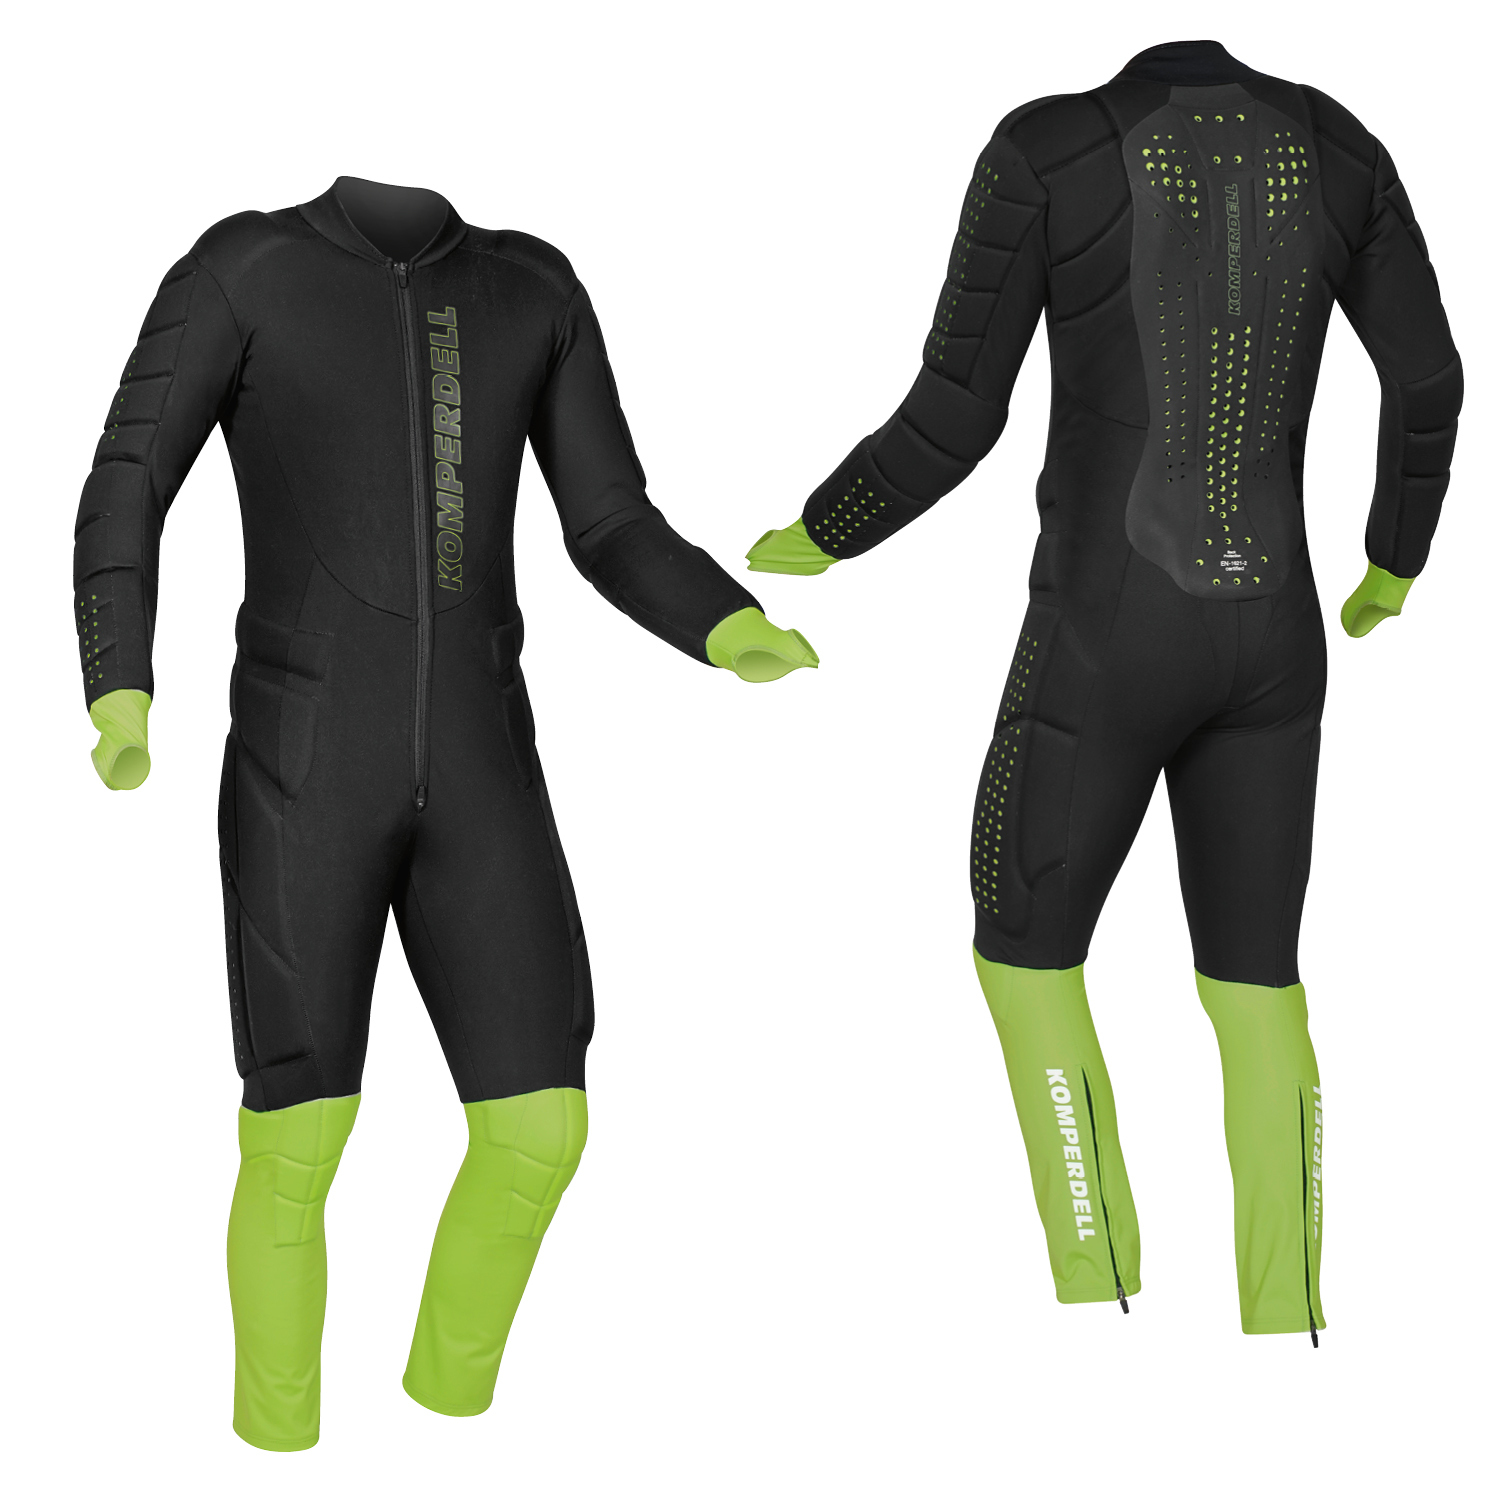 Full Protector Race Suit Adult